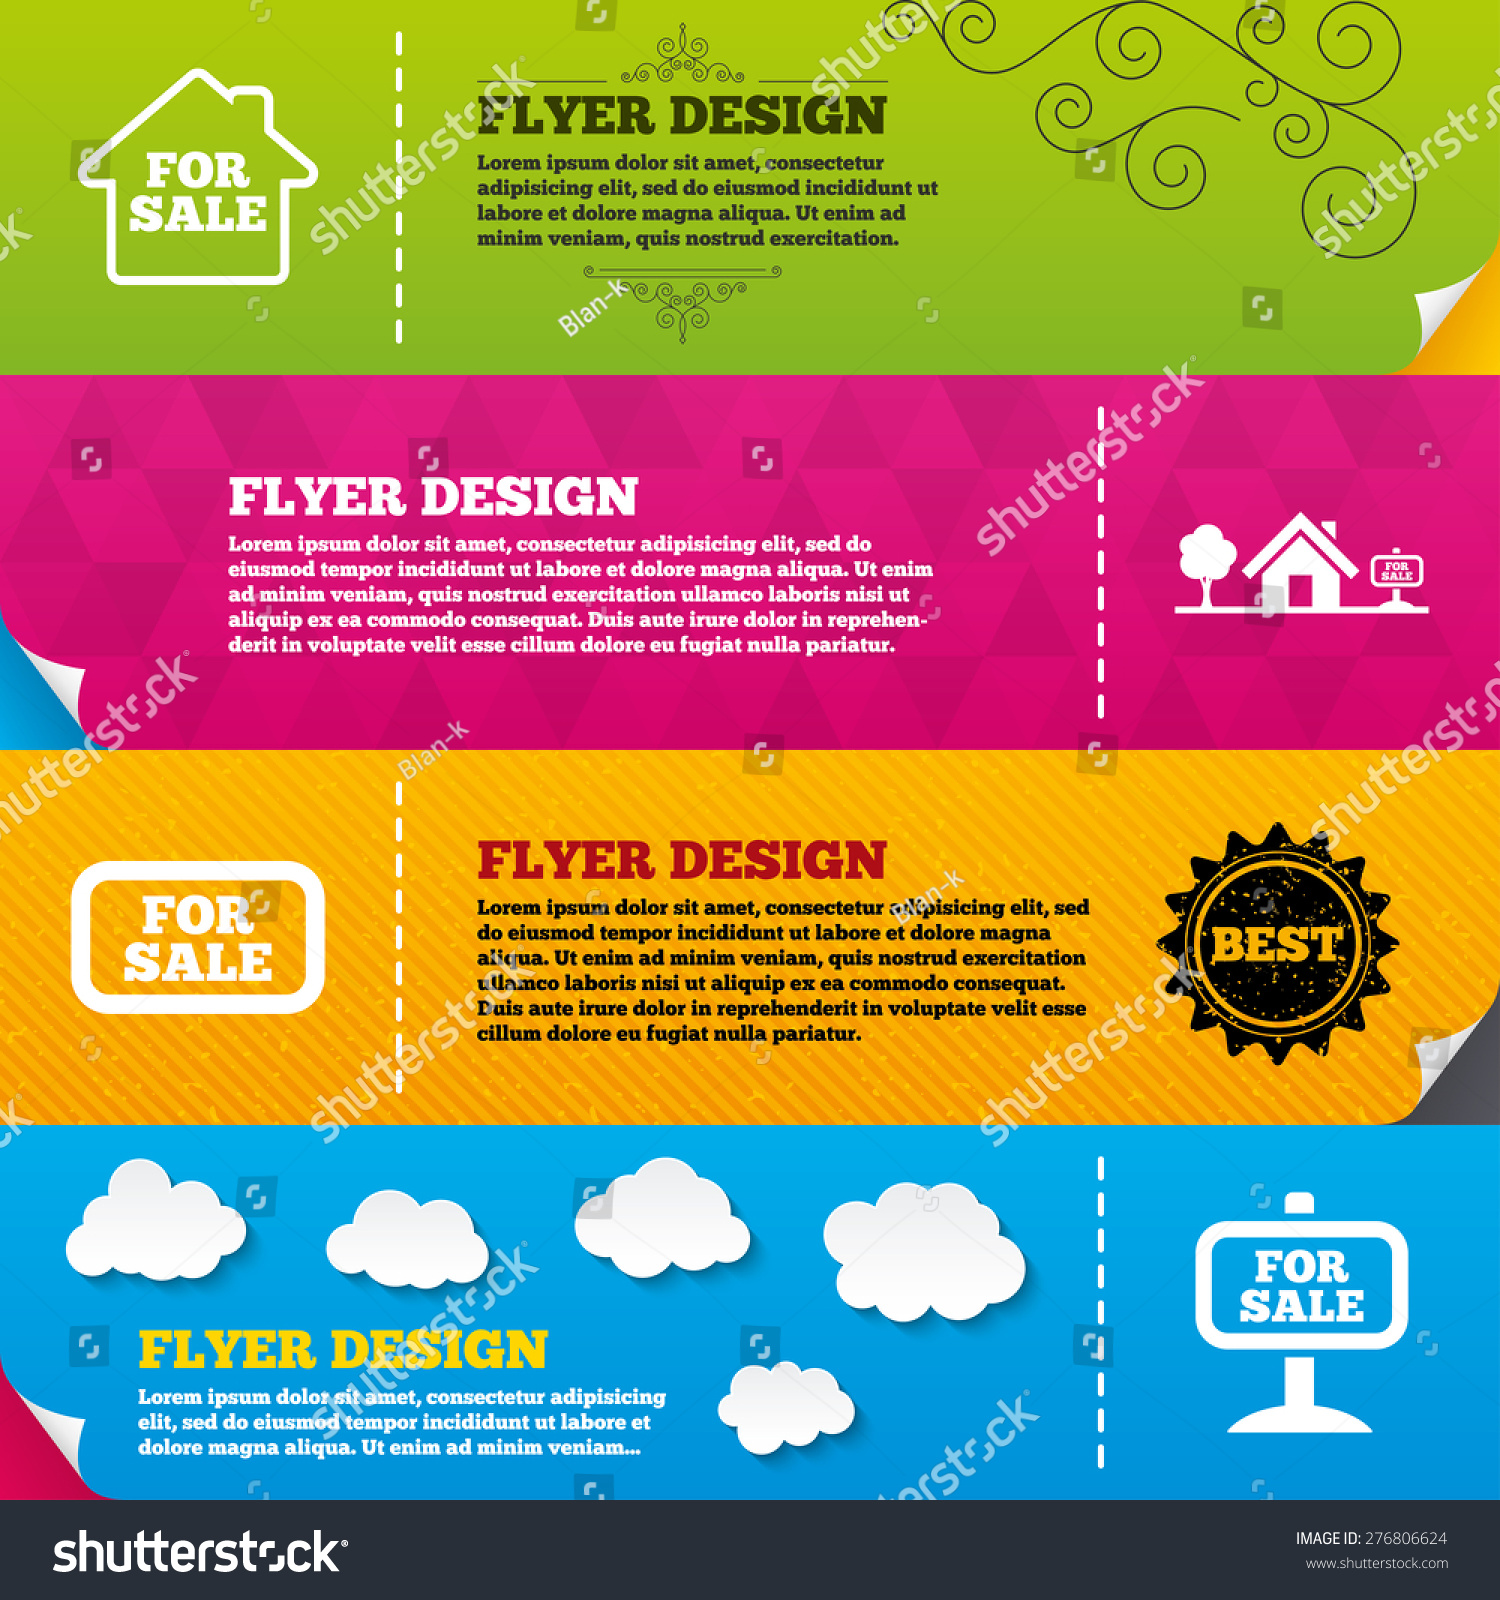 flyer brochure designs icons real stock vector  flyer brochure designs for icons real estate selling signs home house symbol